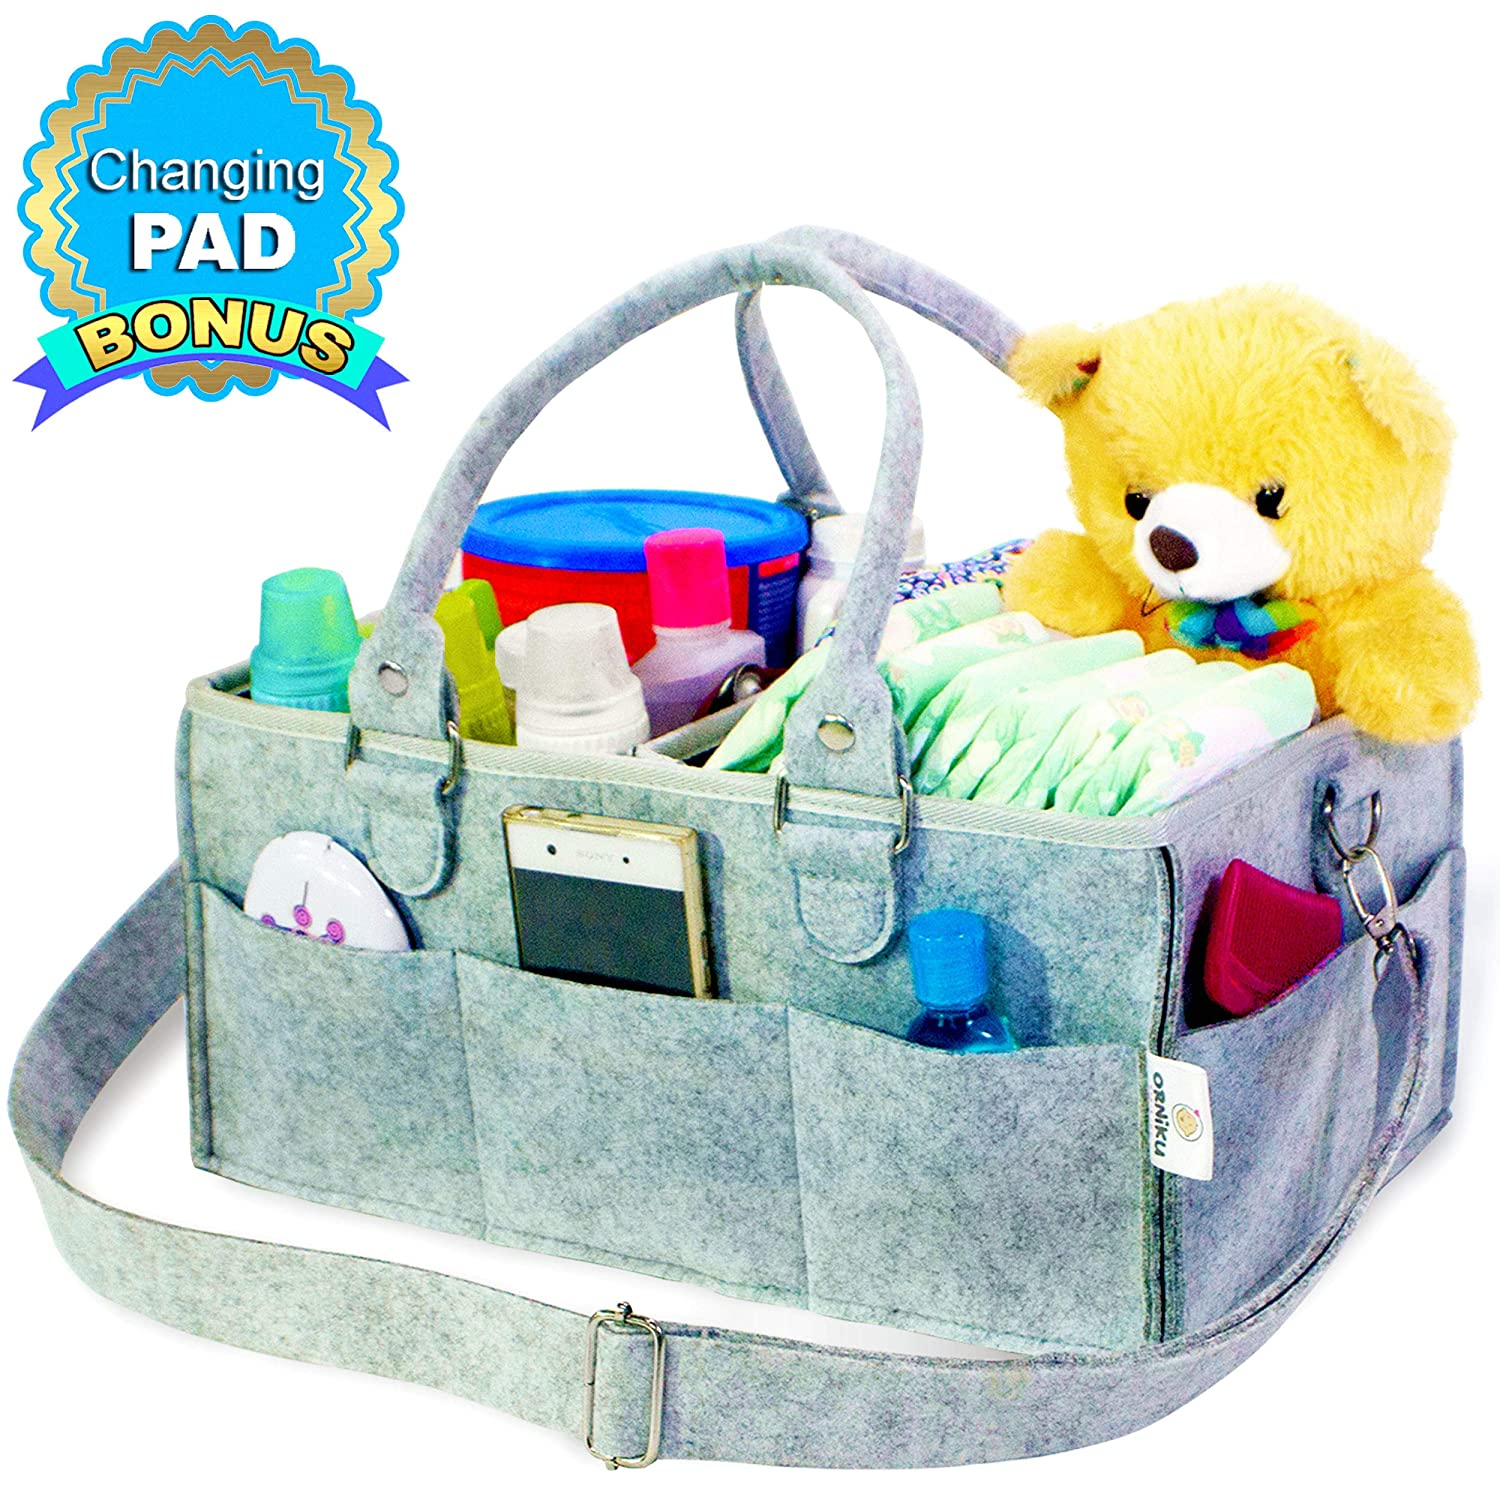 Baby Diaper Caddy by Orniku This Nursery Tote Bag is Portable and Best as Car Travel Organizer Works for Boys or Girls as Storage Bin and Great for Changing Table and as Shower Gift Basket for Babies